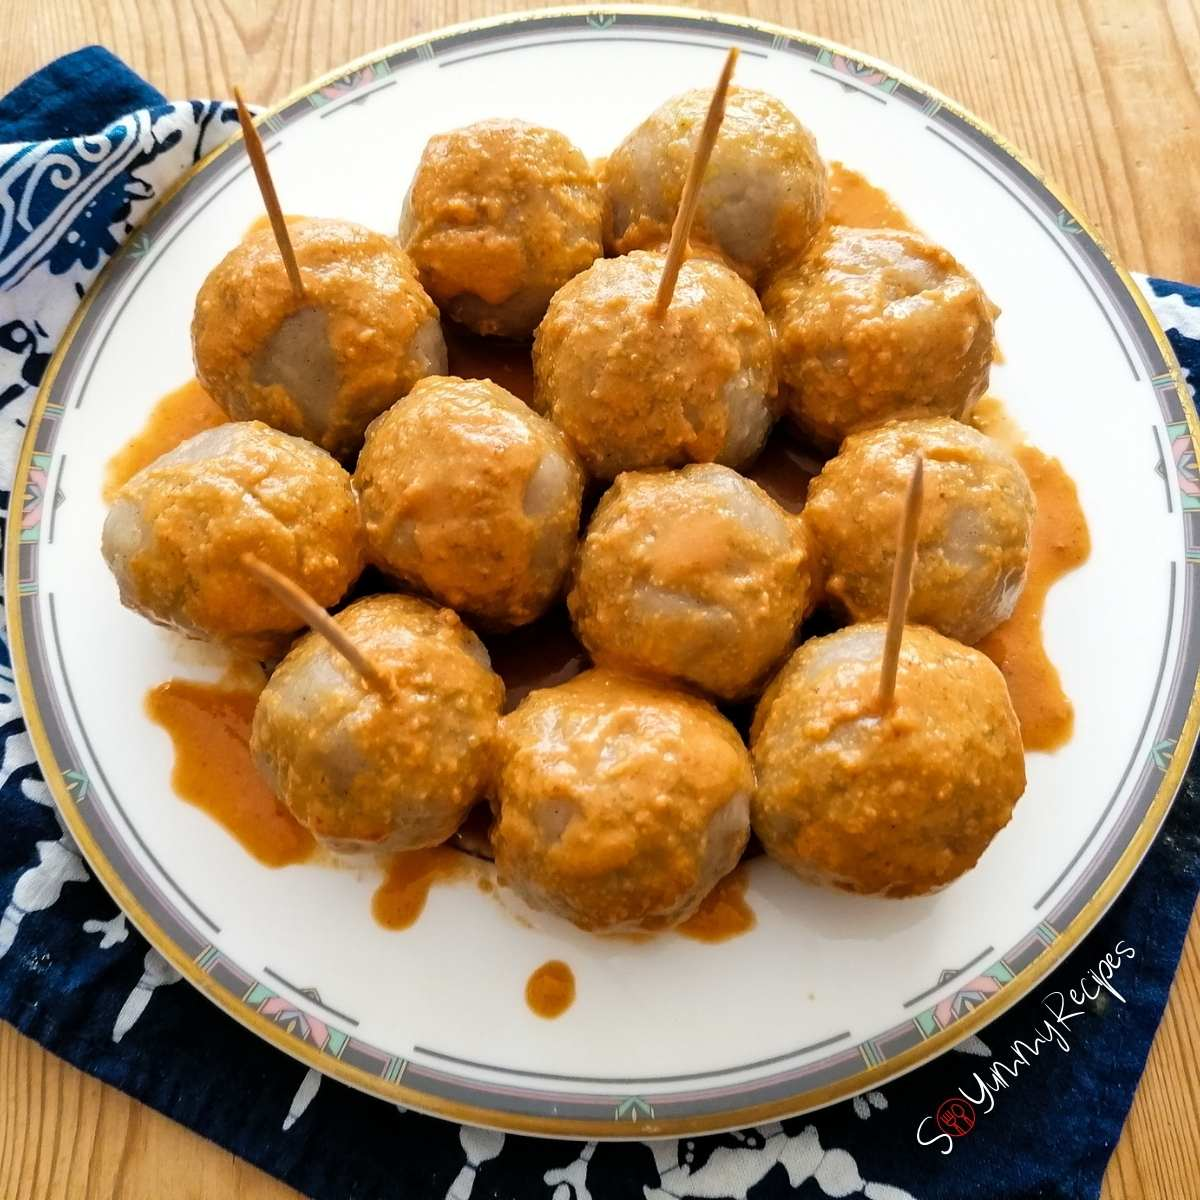 a plate of Cilok - Indonesian tapioca balls drizzled with spicy peanut sauce